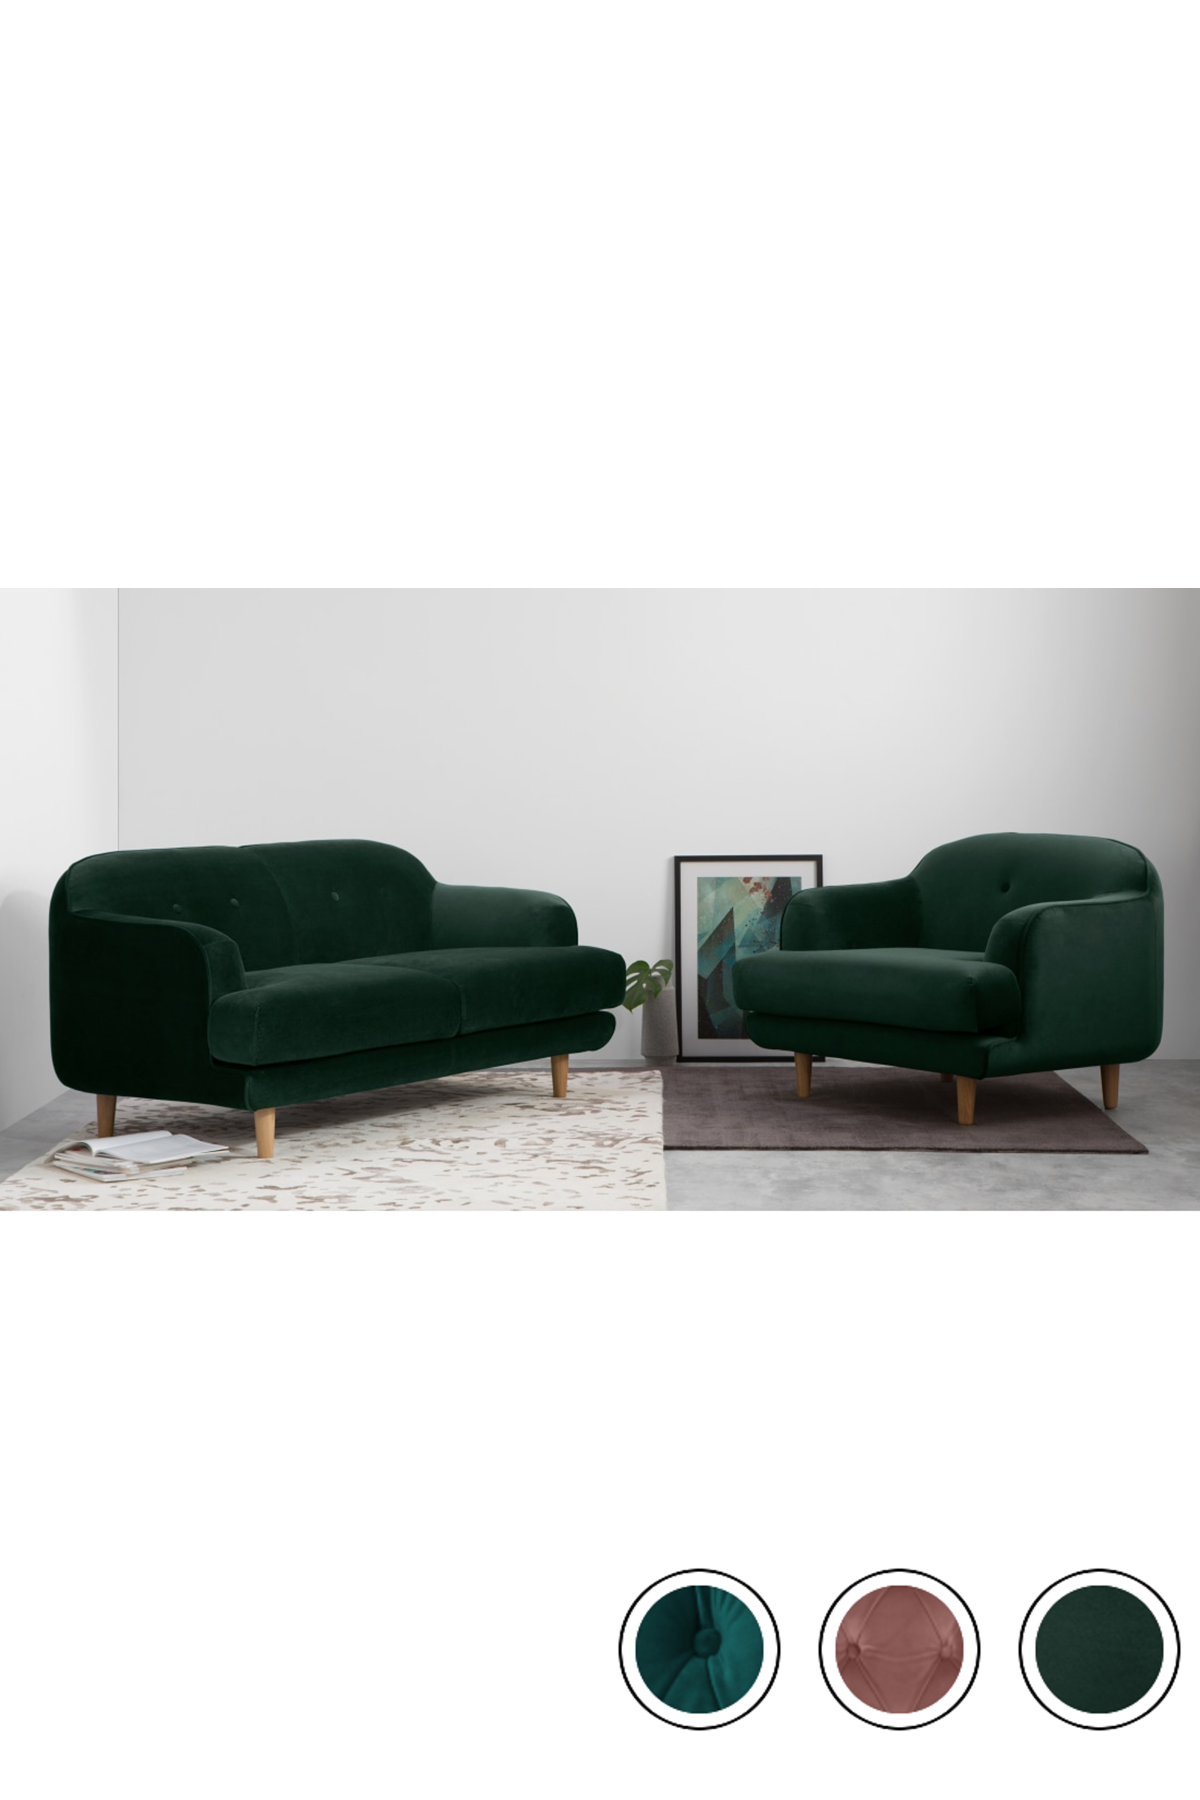 Made 2 Seater Sofa Pine Green Velvet Express Delivery Gracie 2 Seater Sofas Collection From Made Com 2 Seater Sofa Seater Sofa Sofa [ 1800 x 1200 Pixel ]